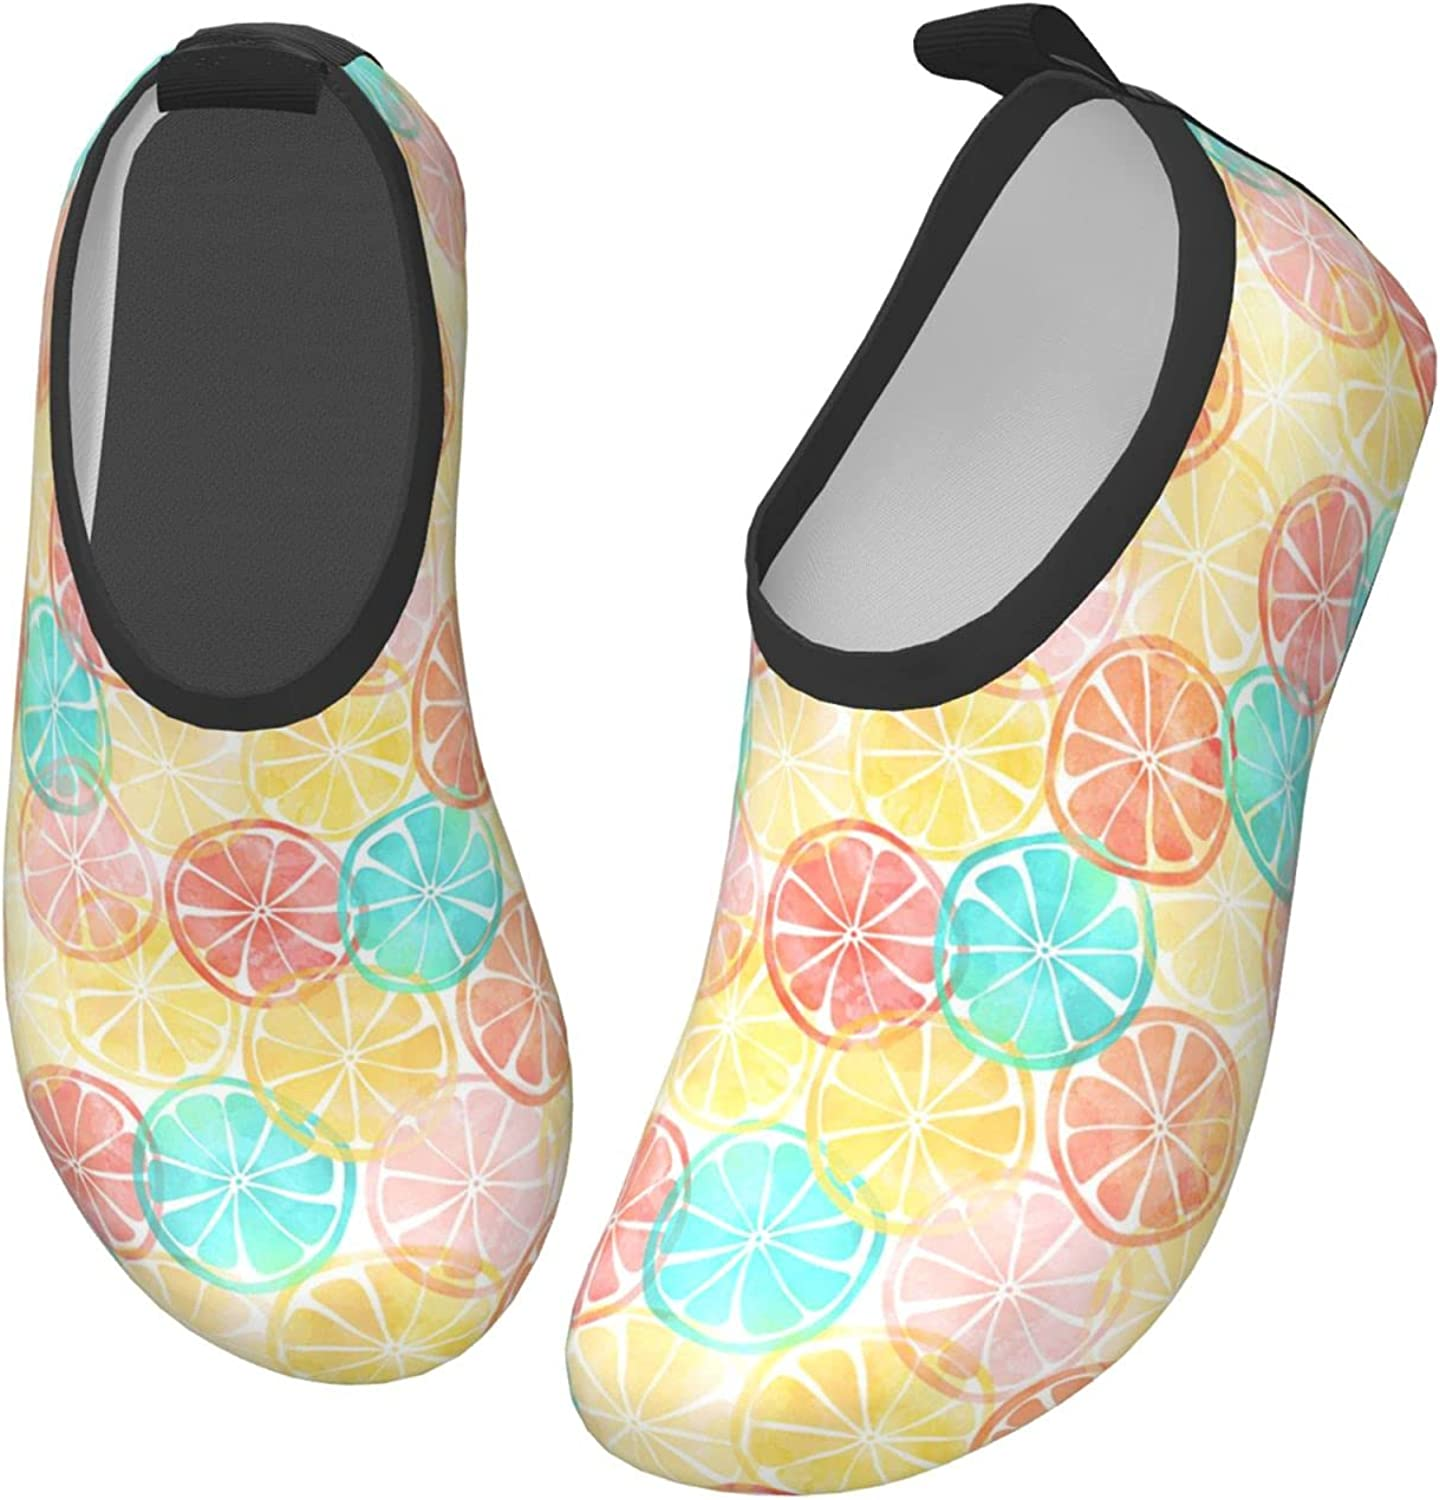 Jedenkuku Blue Pink Red Yellow Lemon Fruit Children's Water Shoes Feel Barefoot for Swimming Beach Boating Surfing Yoga